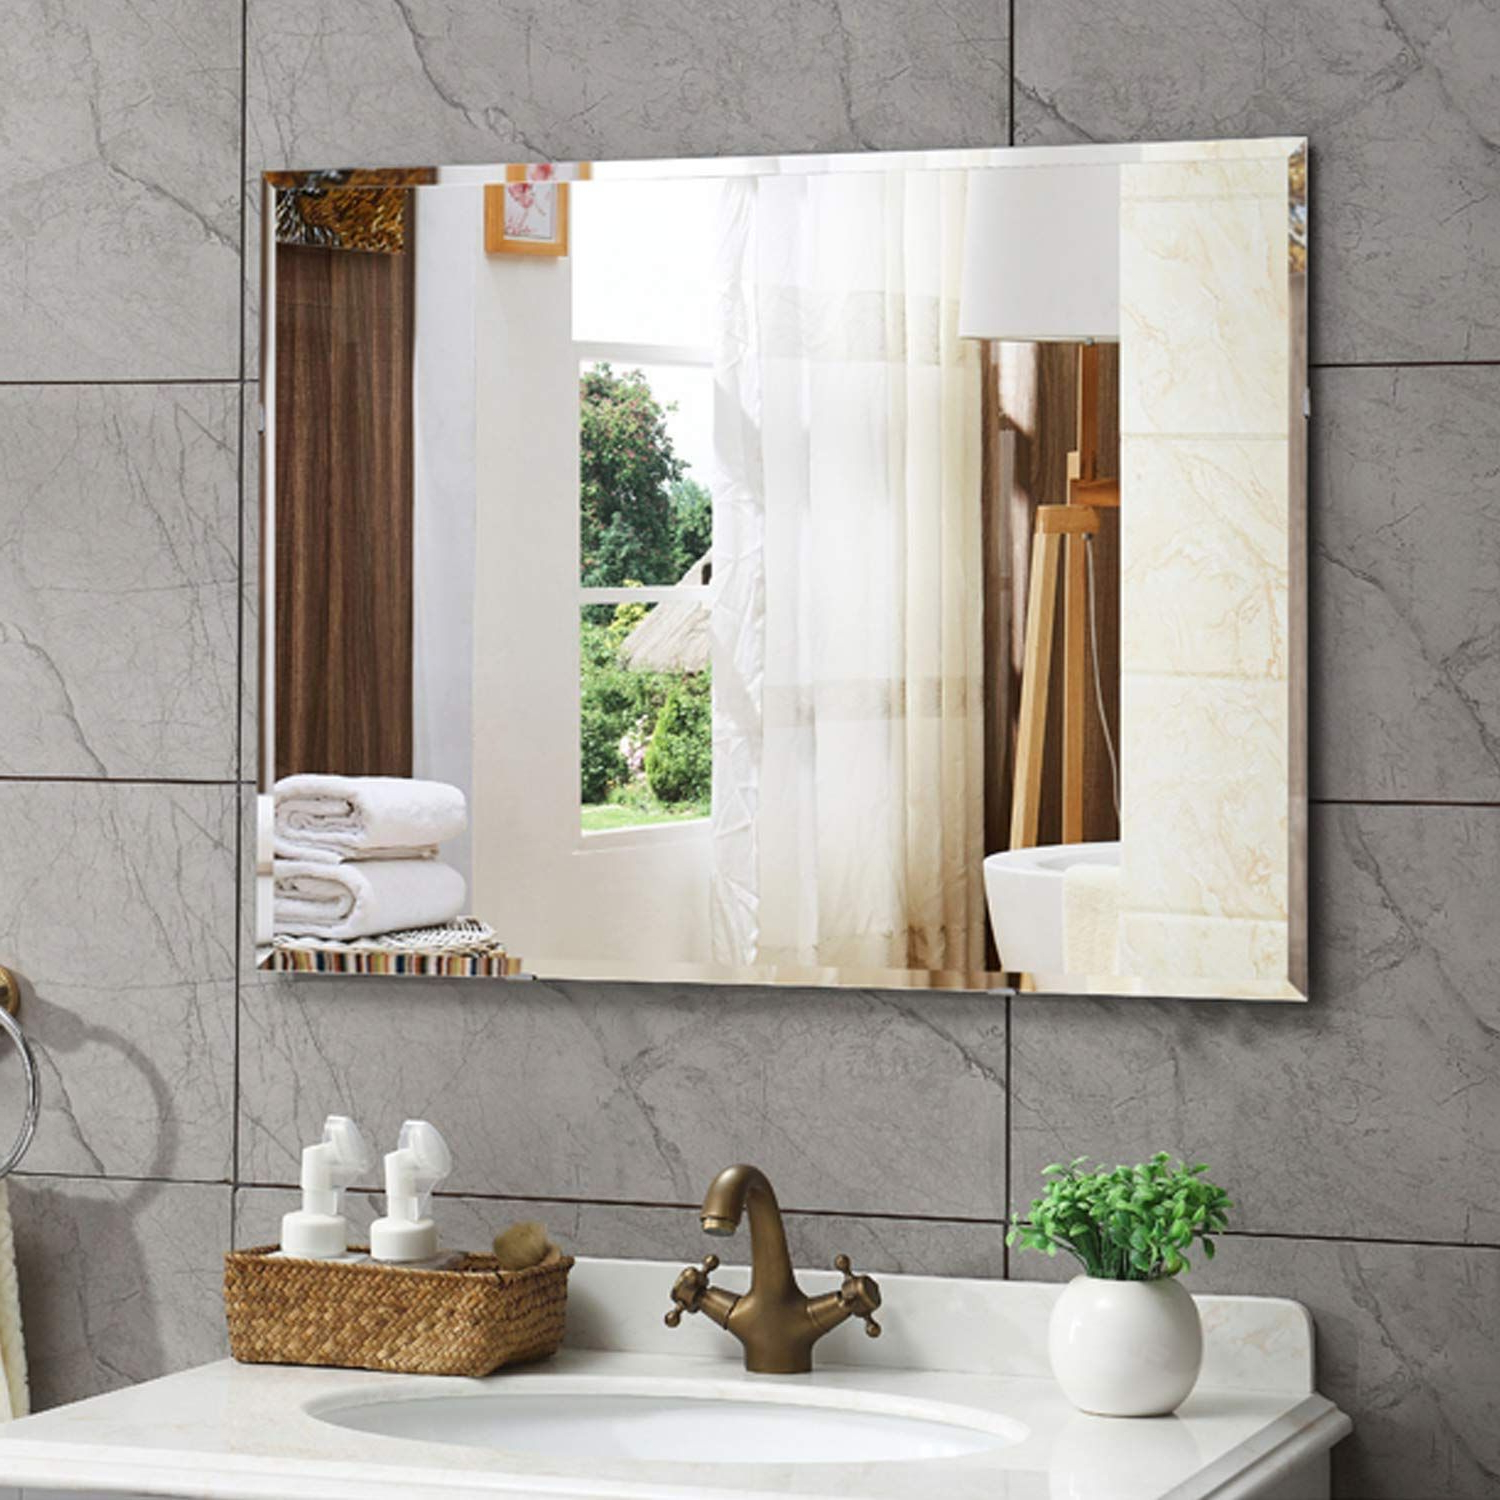 Wallingford Large Frameless Wall Mirrors Intended For Most Up To Date Amazon: Hans&alice Beveled Bathroom Mirrors Wall Mounted, Modern (View 9 of 20)